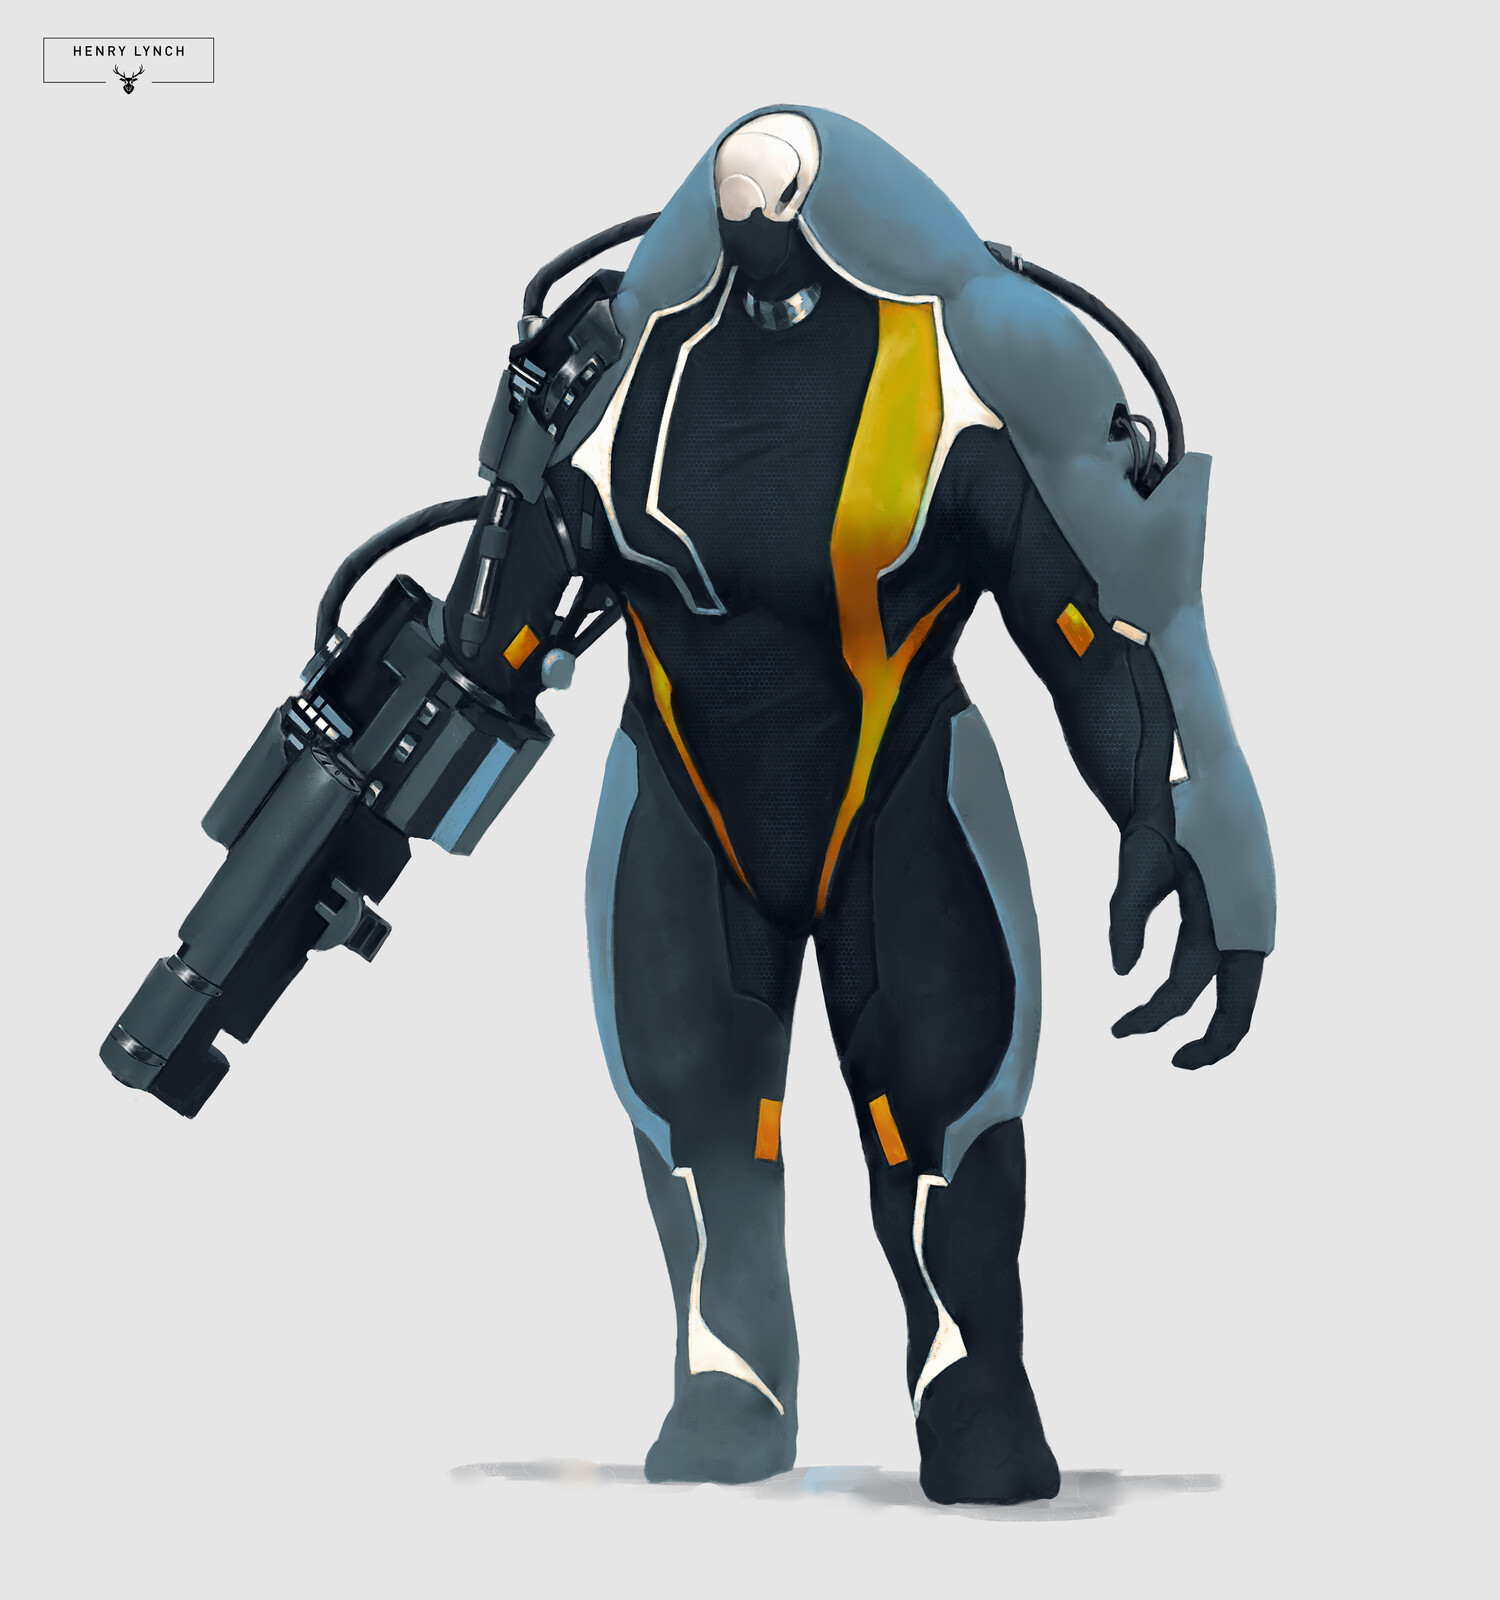 March of Robots 2020 - Design #1